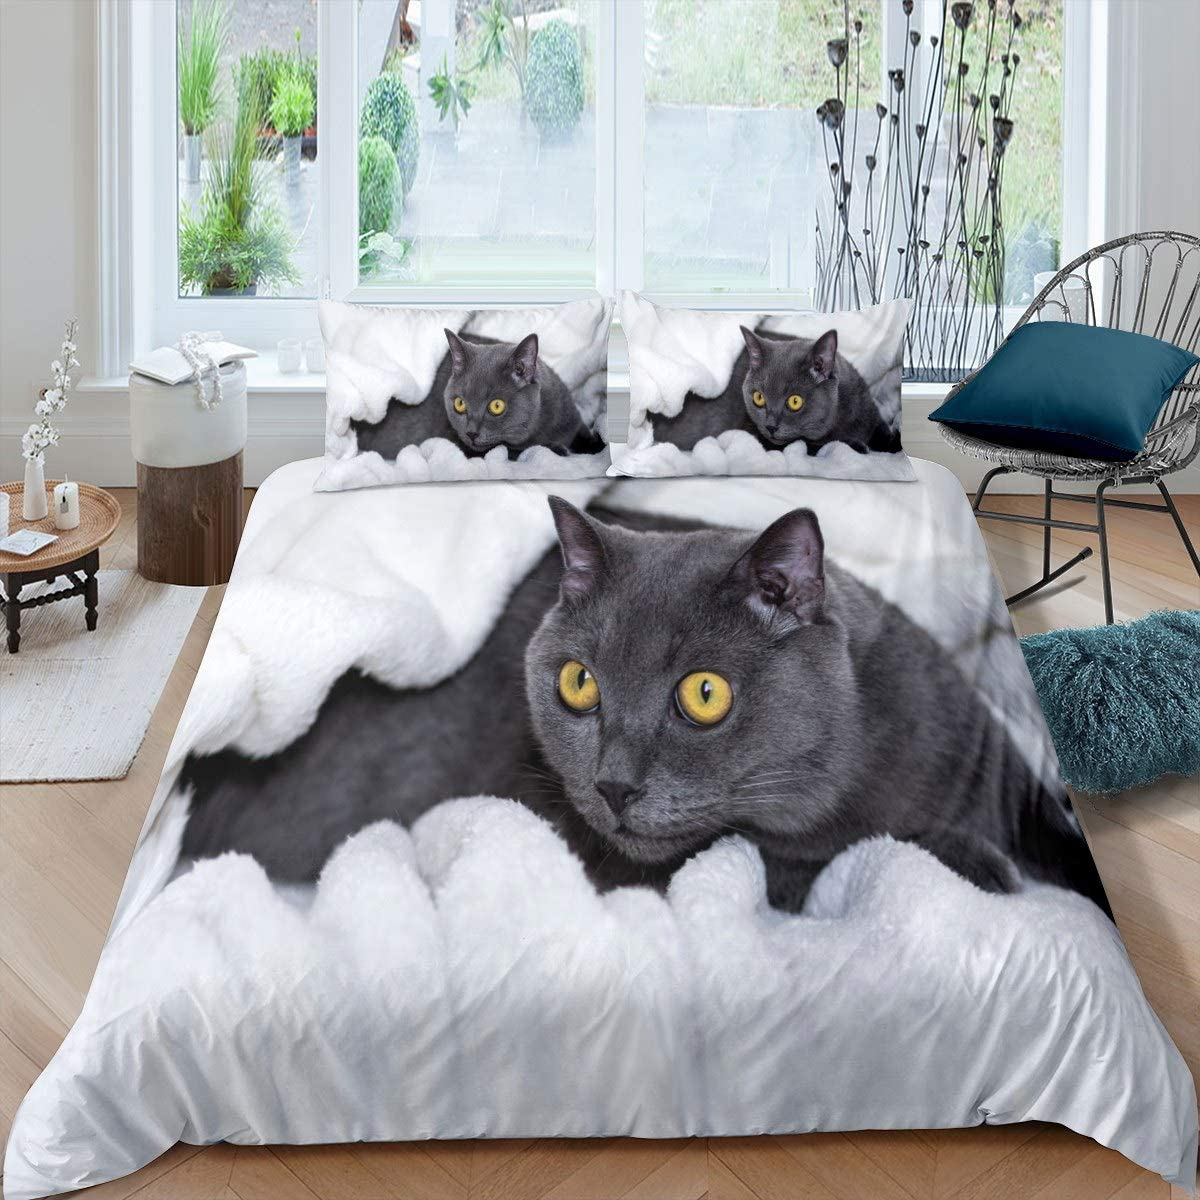 Cat Ranking integrated 1st place Bedding Set Cute Detroit Mall Kitten Print for Cover Adult Kids Comforter